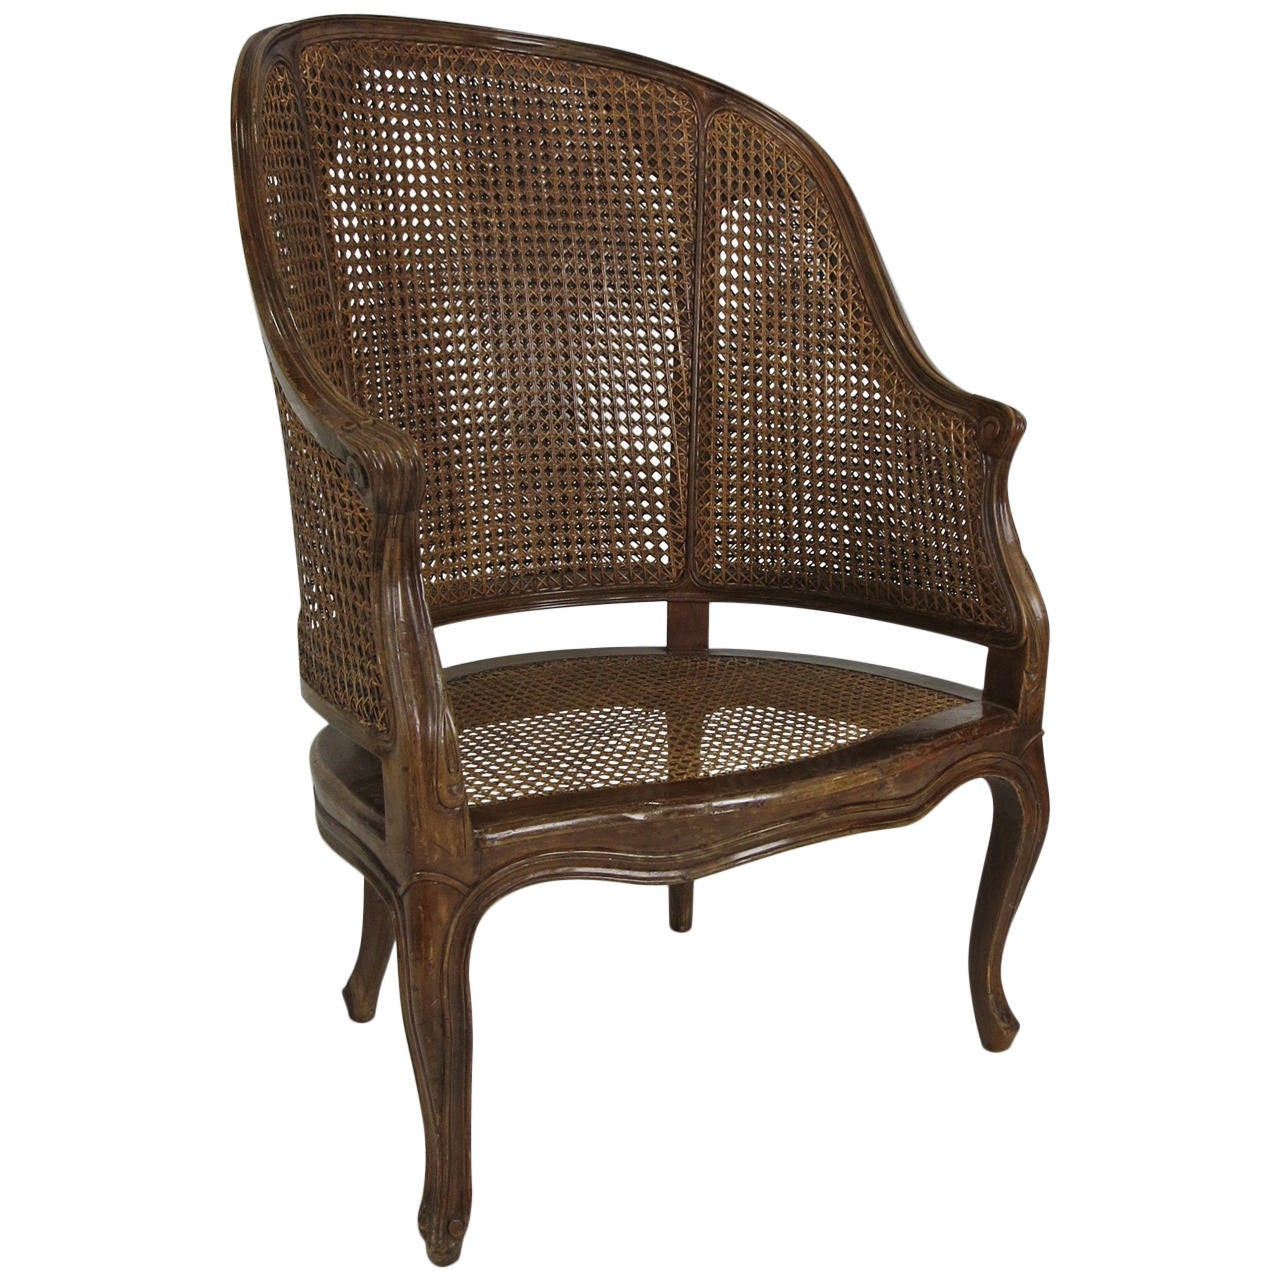 Large-Scale Italian Louis XV Style Barrel Chair